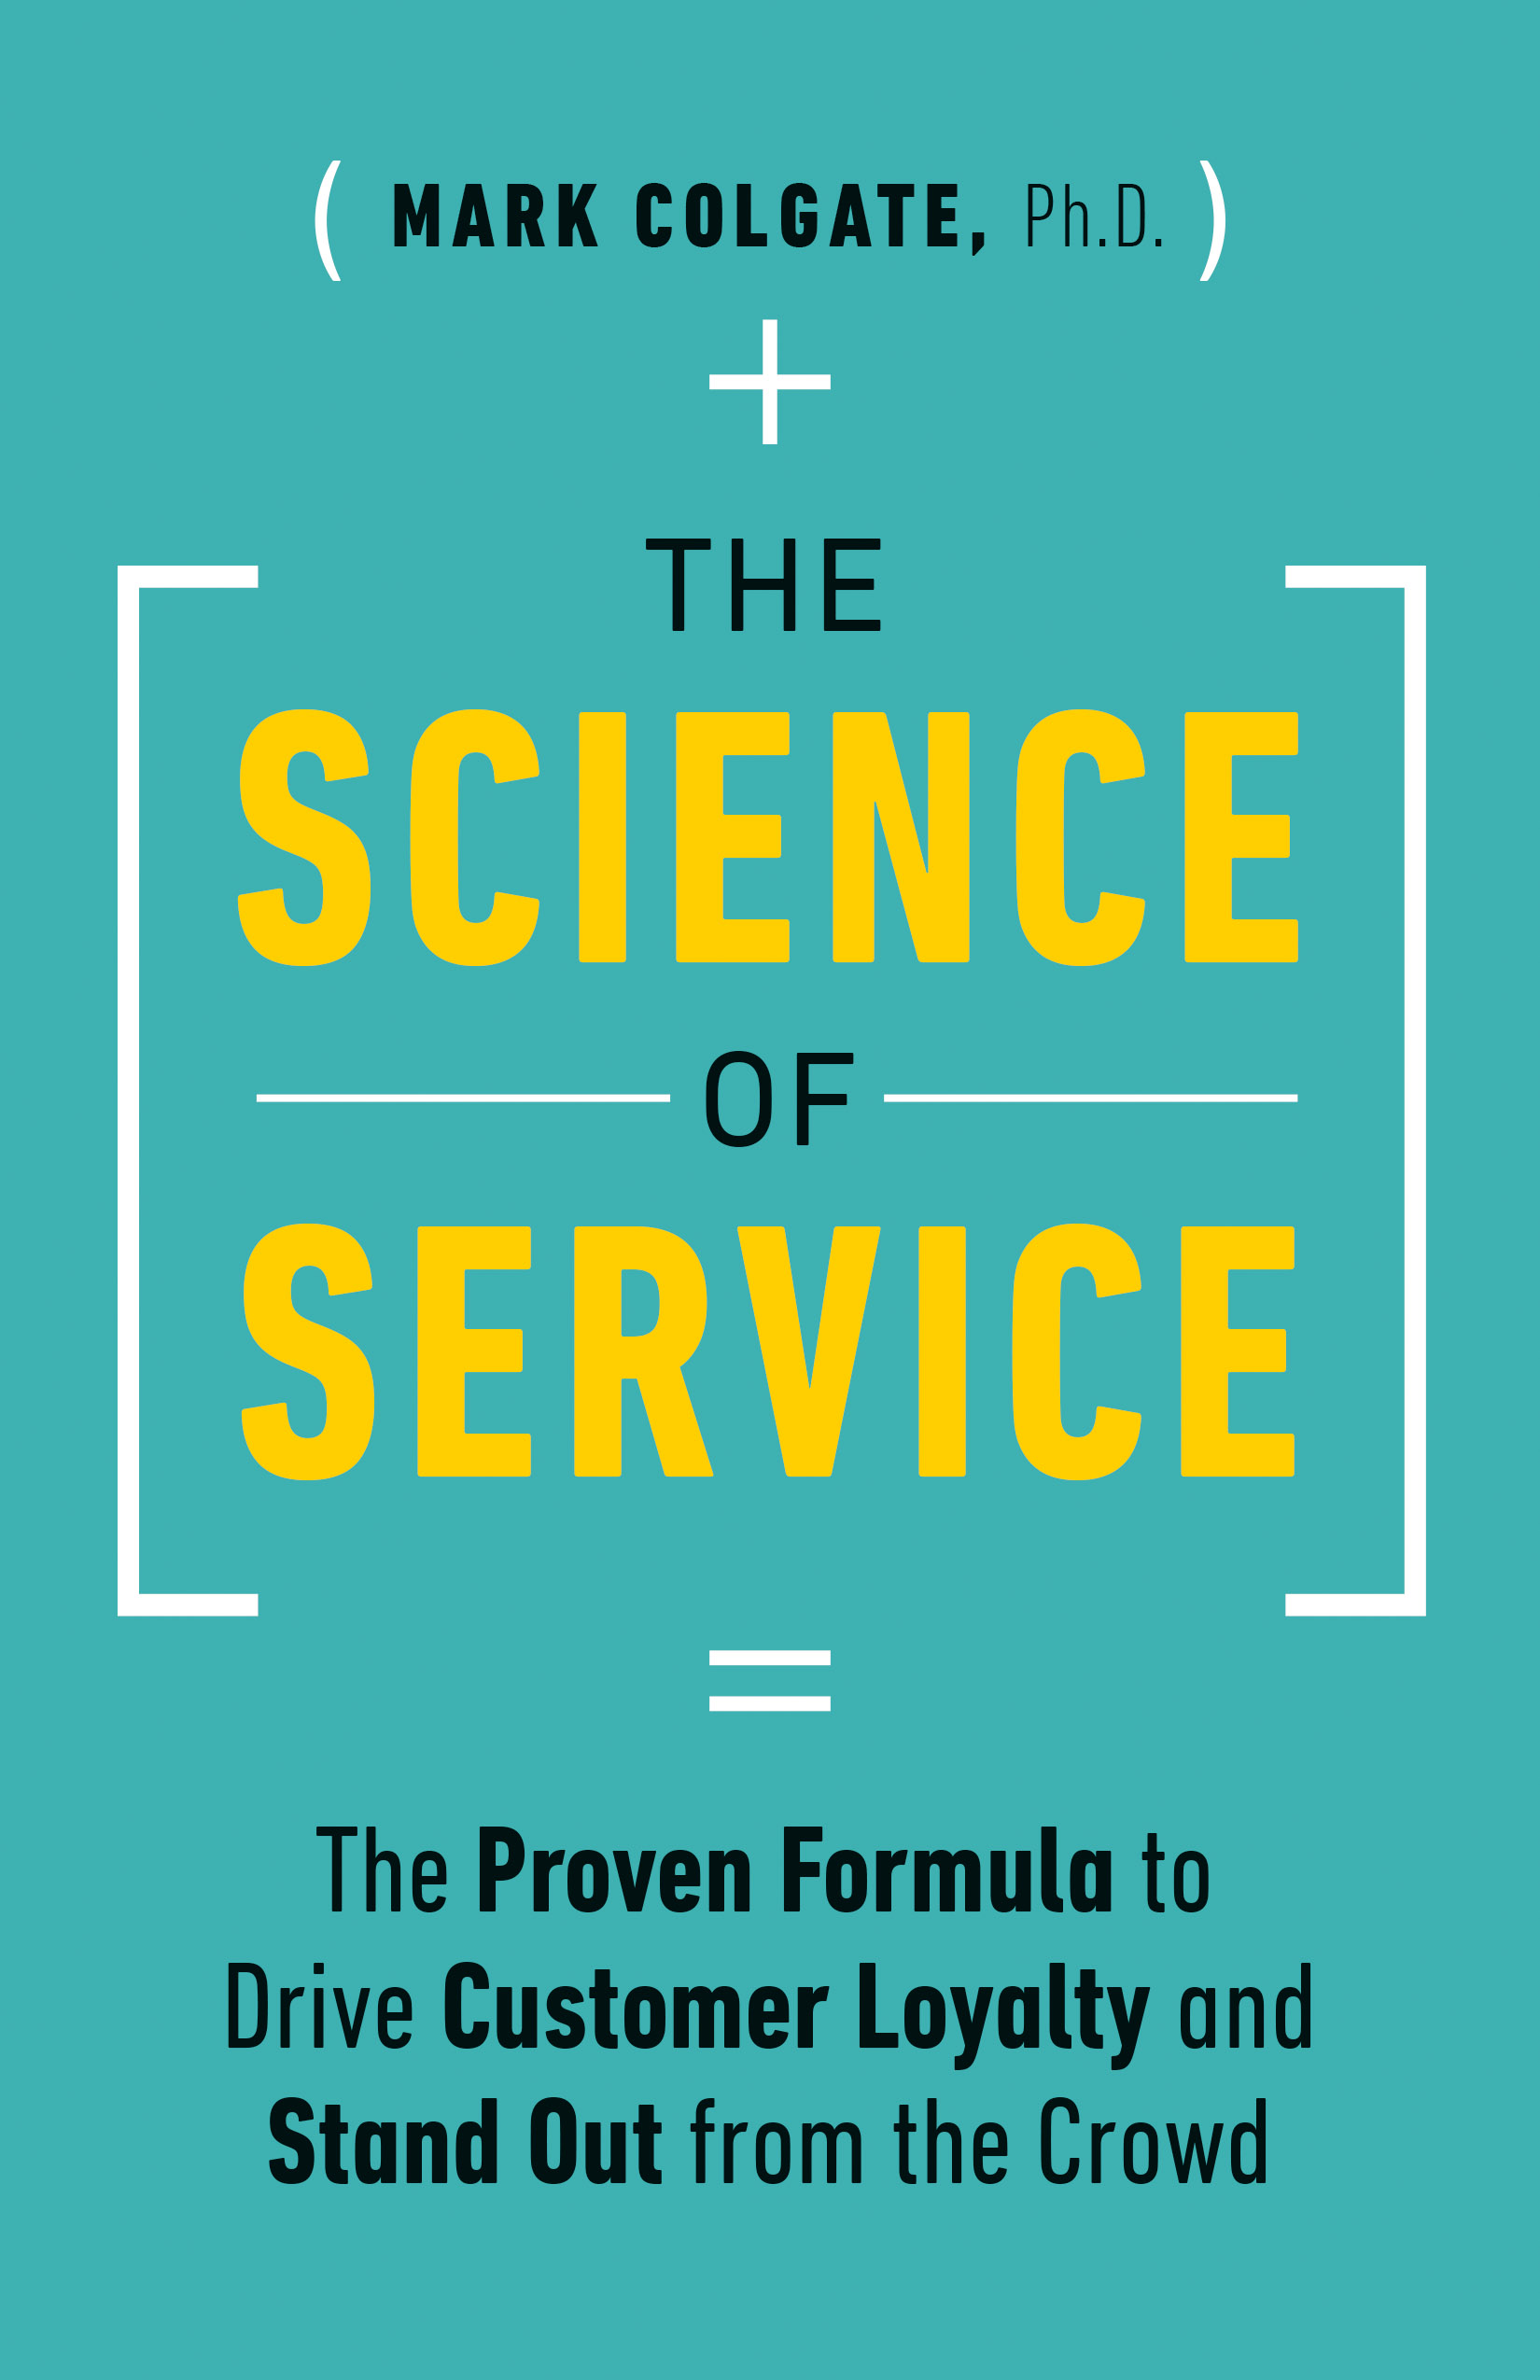 The Science of Service